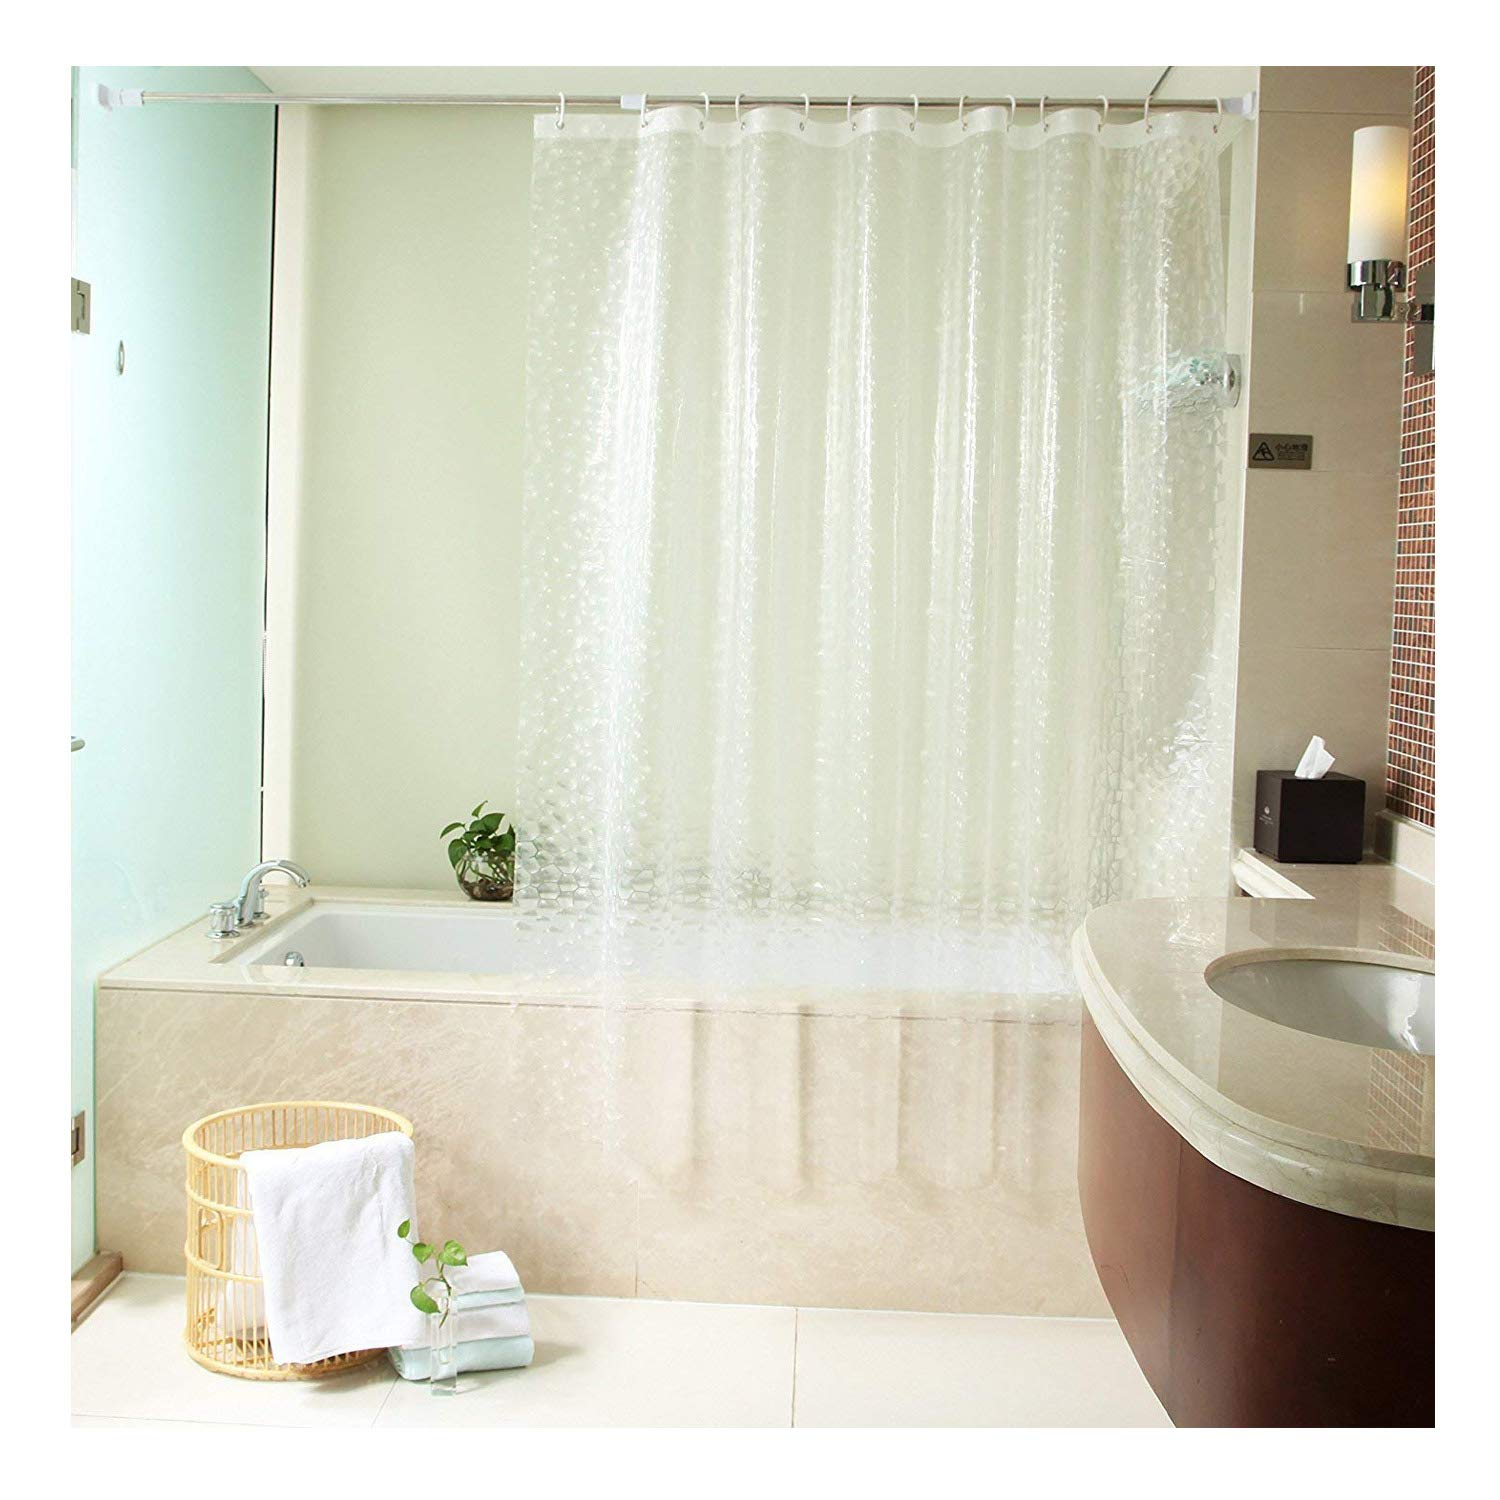 Amazon Uforme 48 Inch By 72 Shower Curtain Liner PVC Free Enviromental 3D Cube Bath Anti Water And Mold Proof With Hooks Clear Home